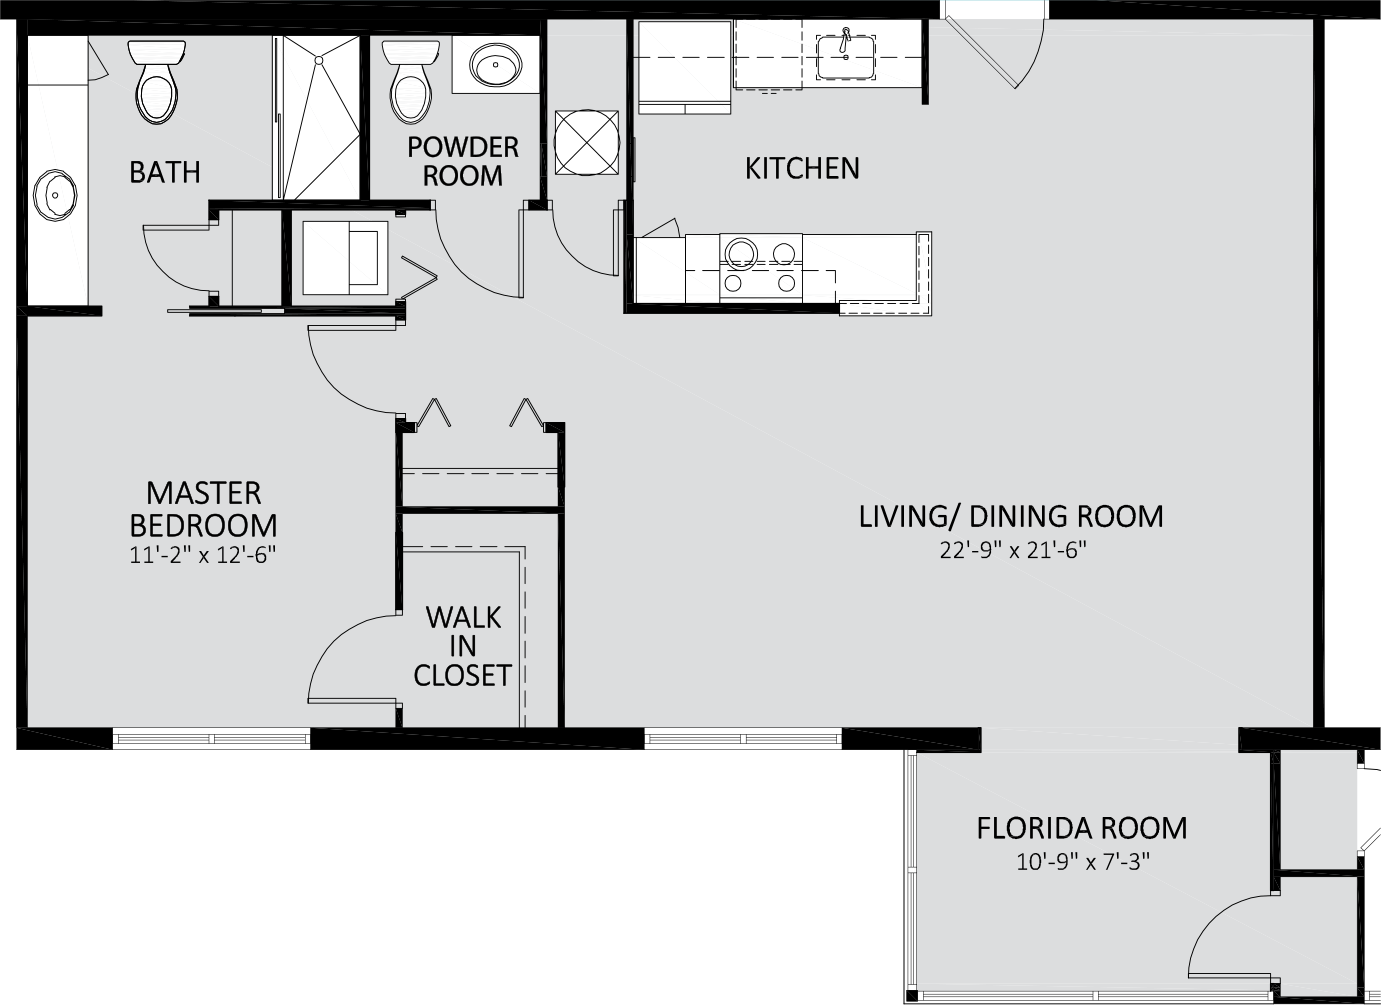 SAE Ocean Breeze GHJKL Contemporary One Bedroom-Great Room 923 Sq Ft.png